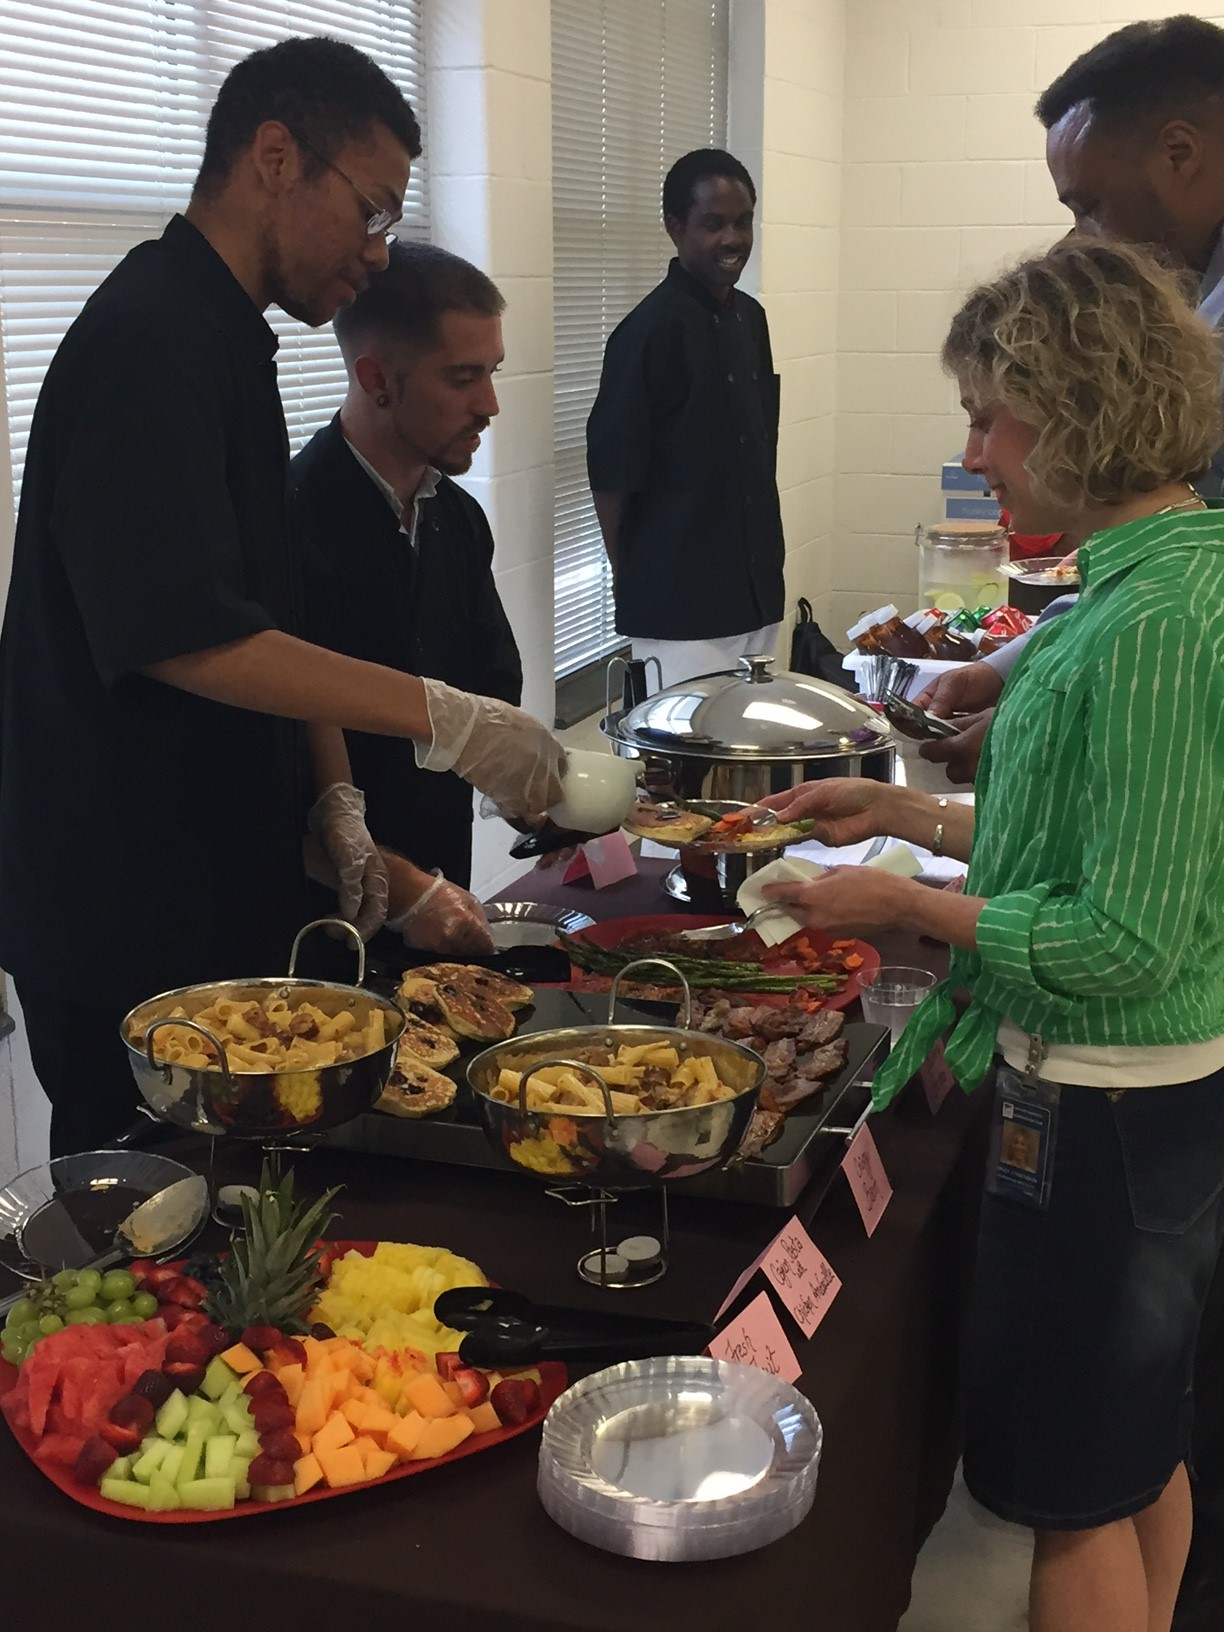 freshpoint-raleigh-wake-tech-community-college-south-willimgton-mens-shelter-food-waste-2